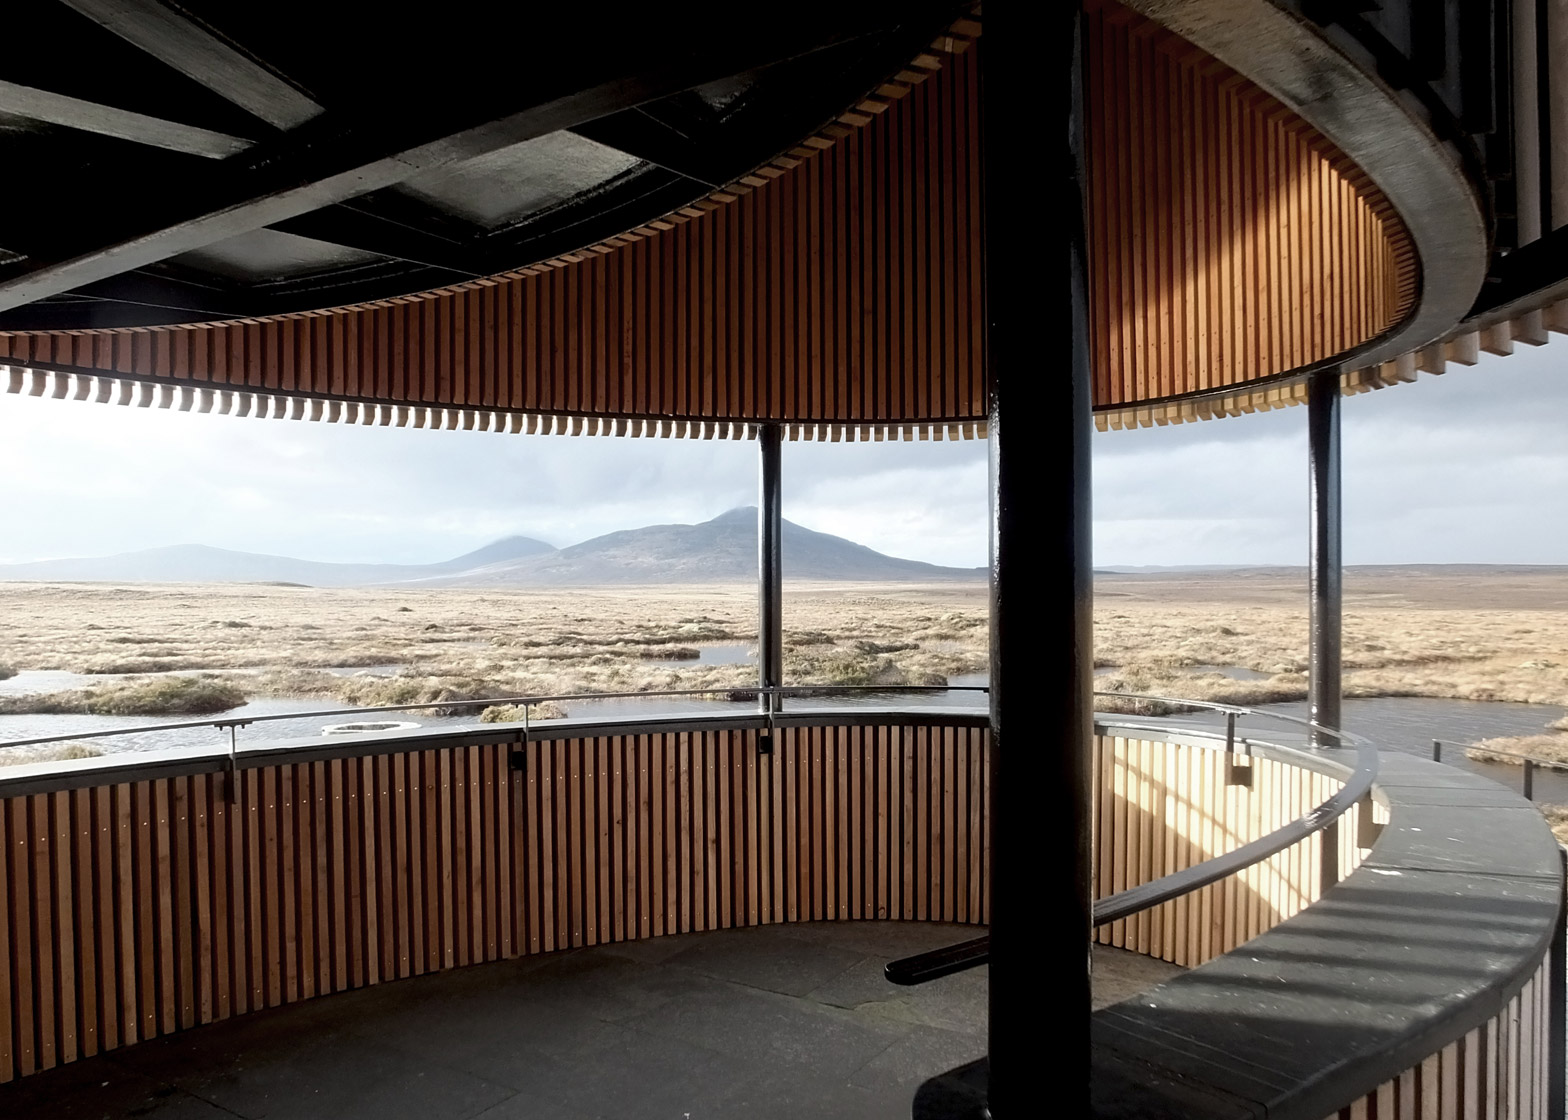 Photograph by Sjoerd Tel Forsinard lookout tower by Icosis Architects in the Scottish Highlands, UK architecture